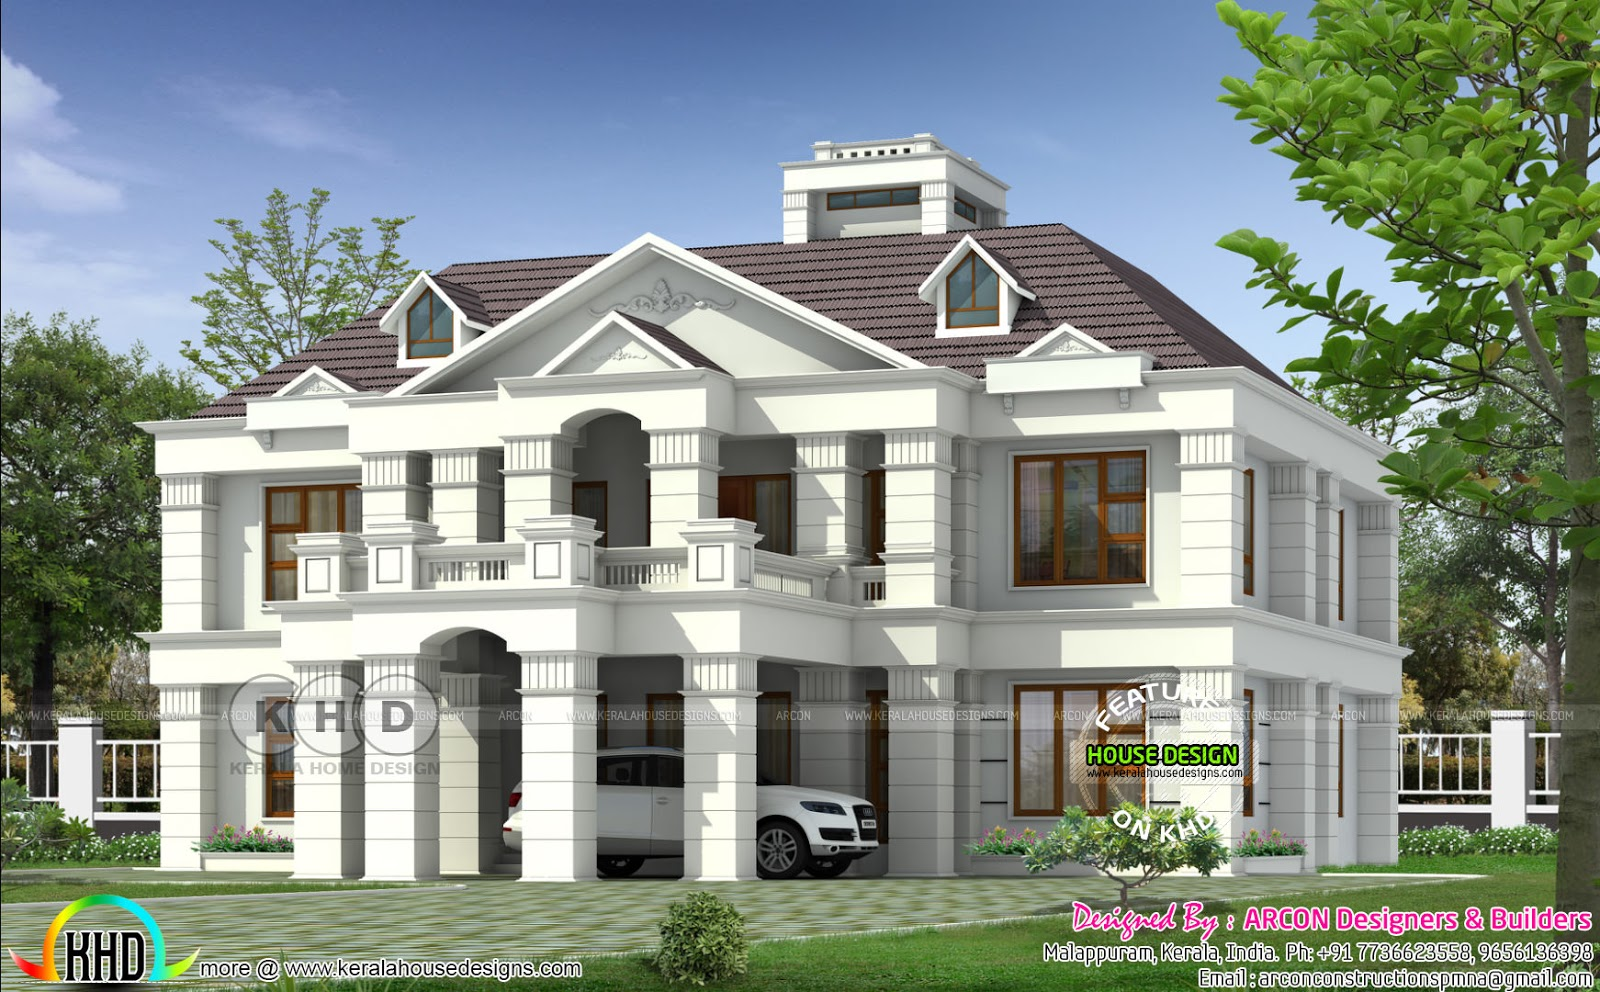 Colonial home plan by arcon designers builders kerala for Colonial home builders